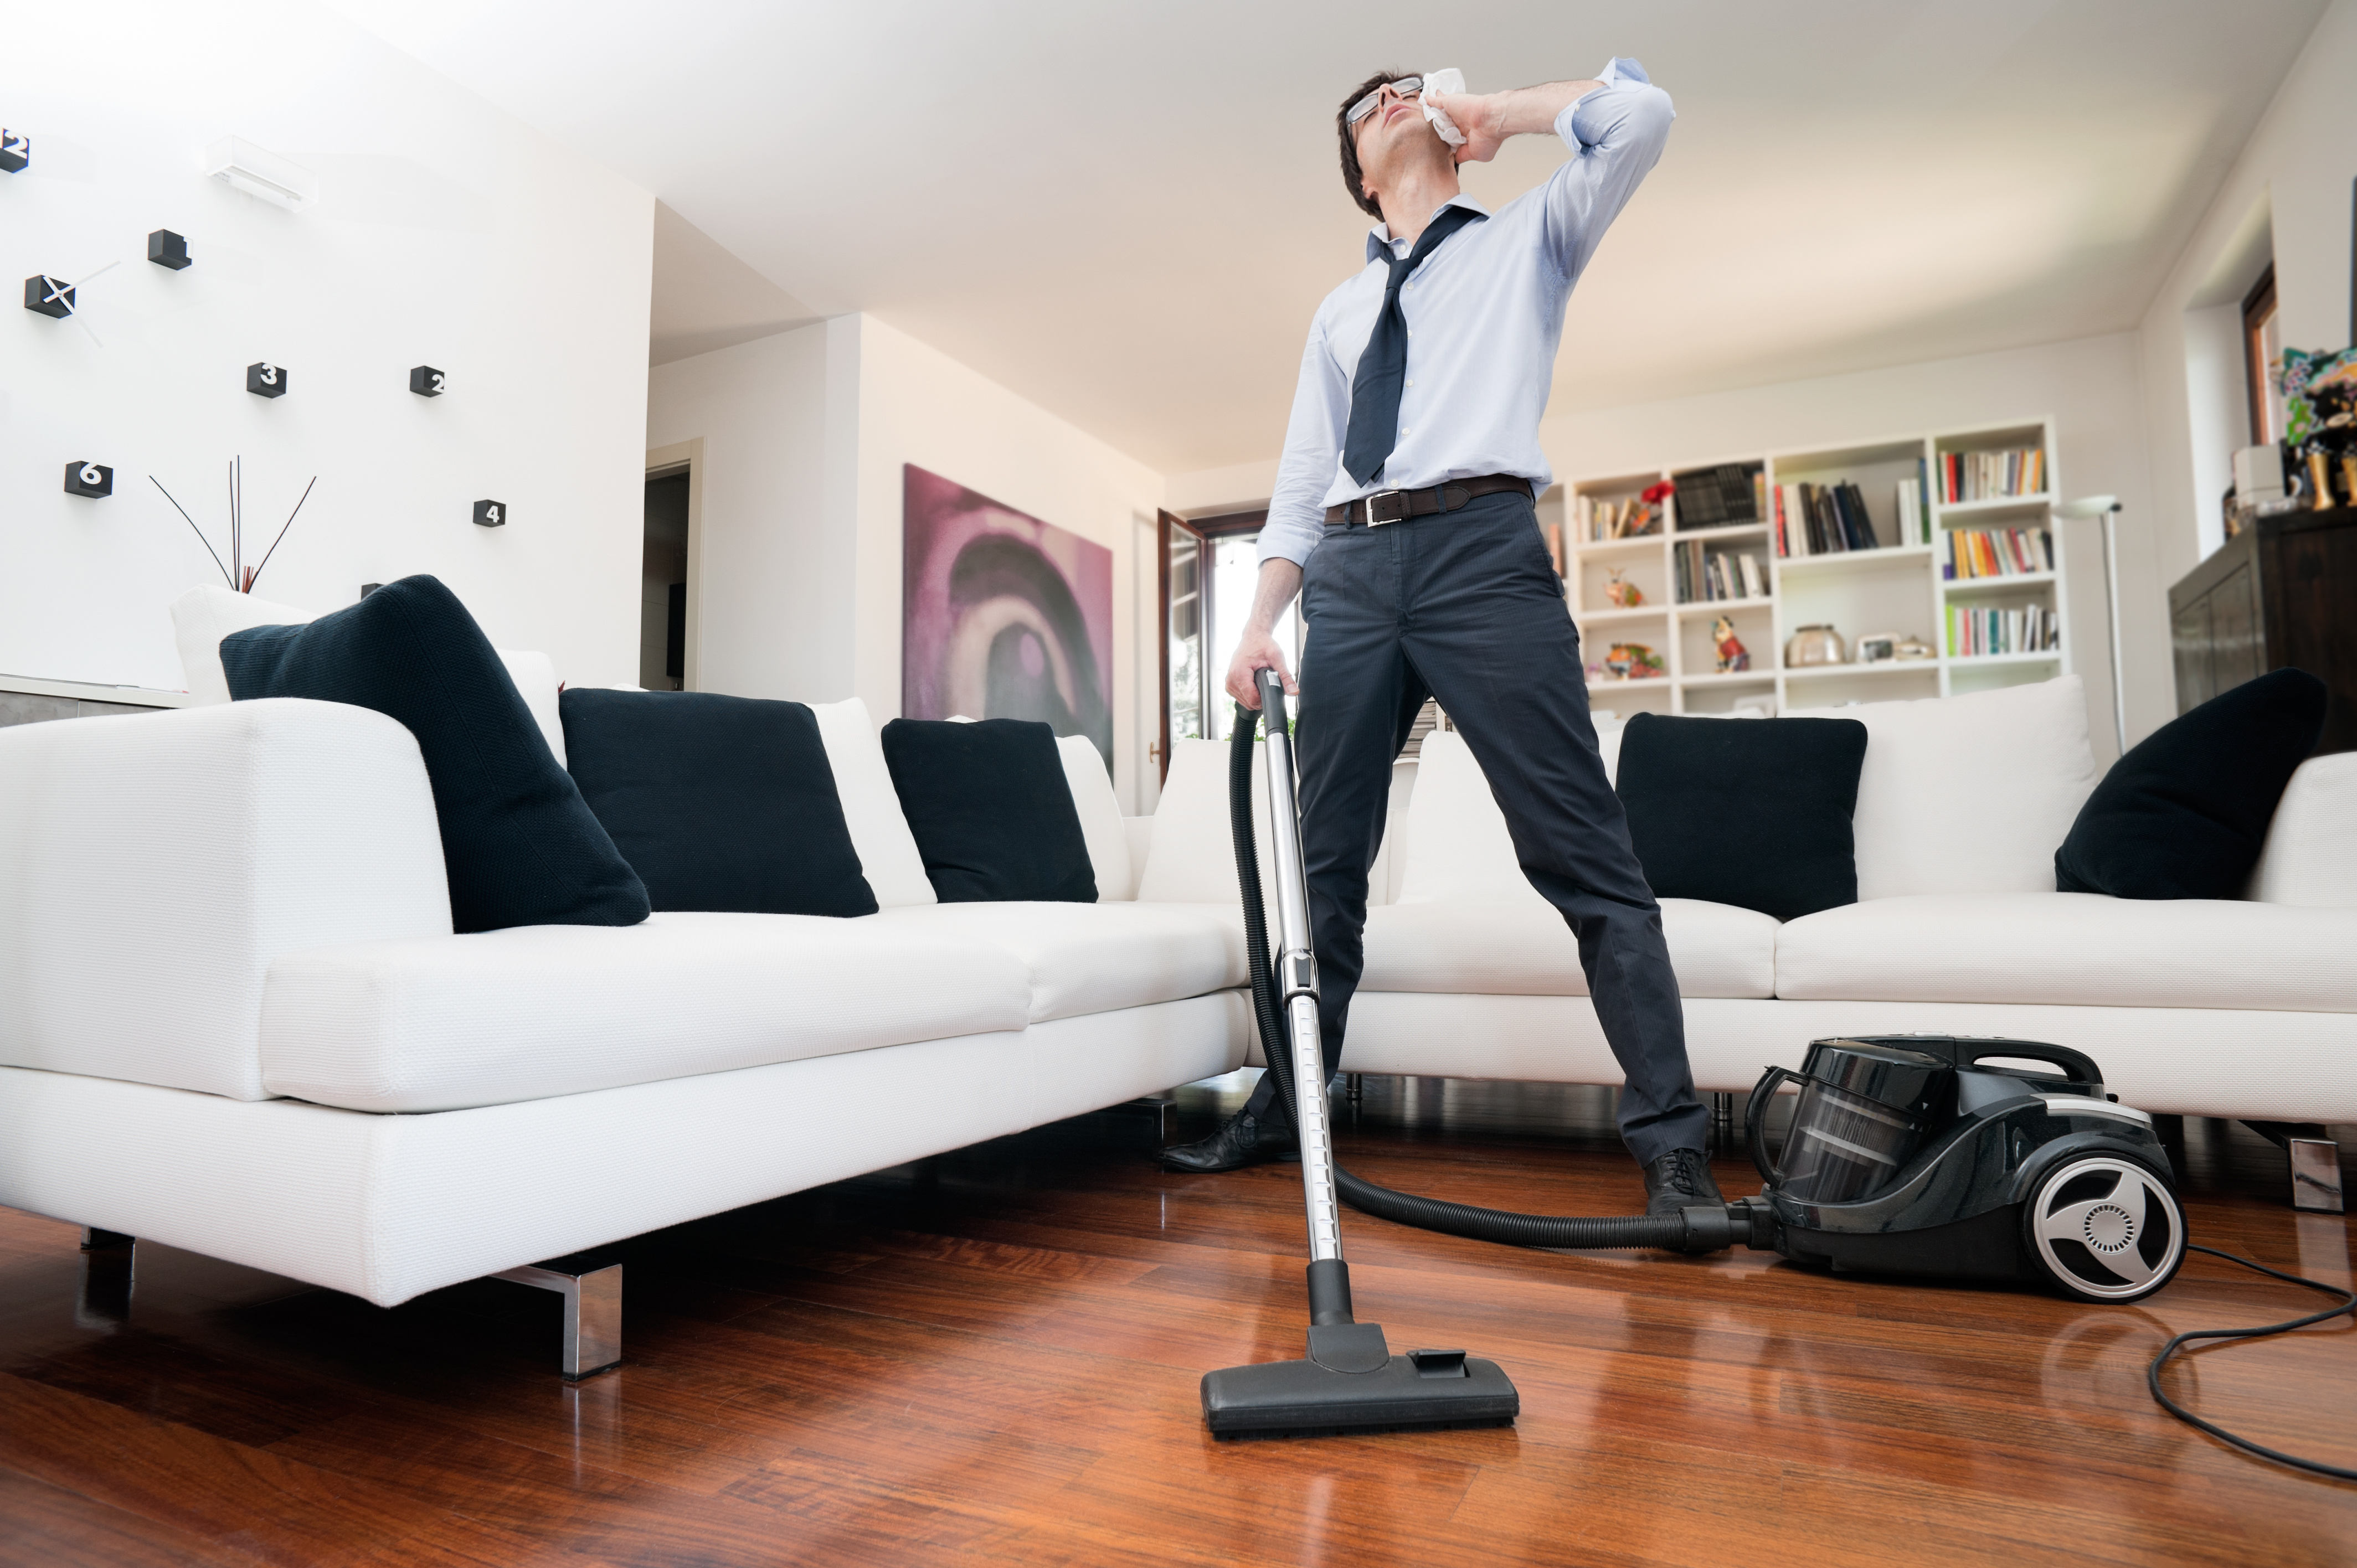 man sweating cleans the floor of the house